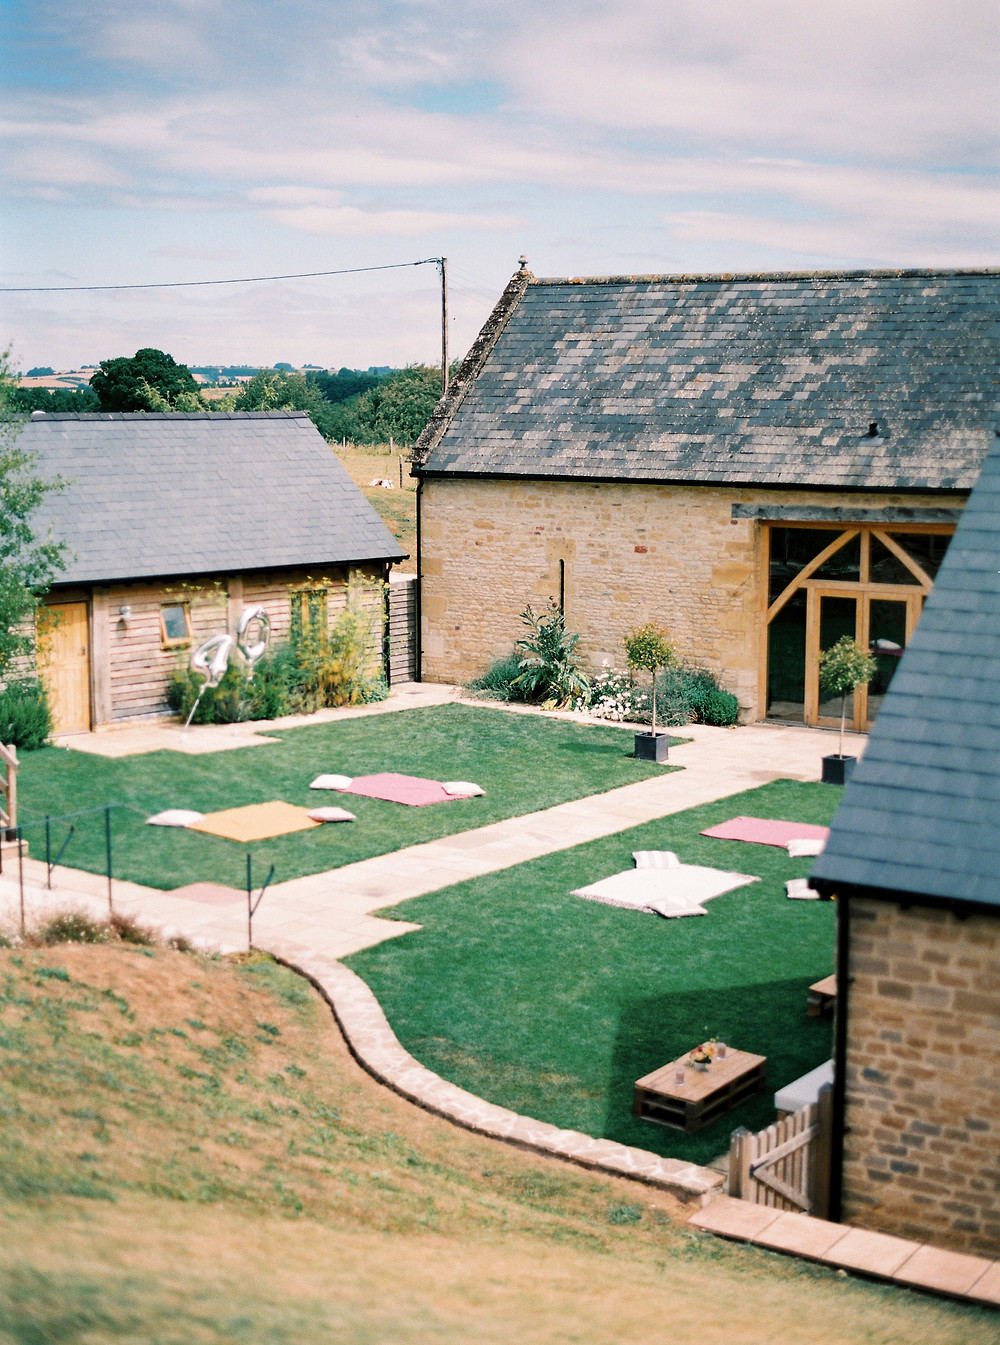 STUDIO SORORES: COTSWOLDS WEDDING PLANNER & FLORIST - UPCOTE BARN